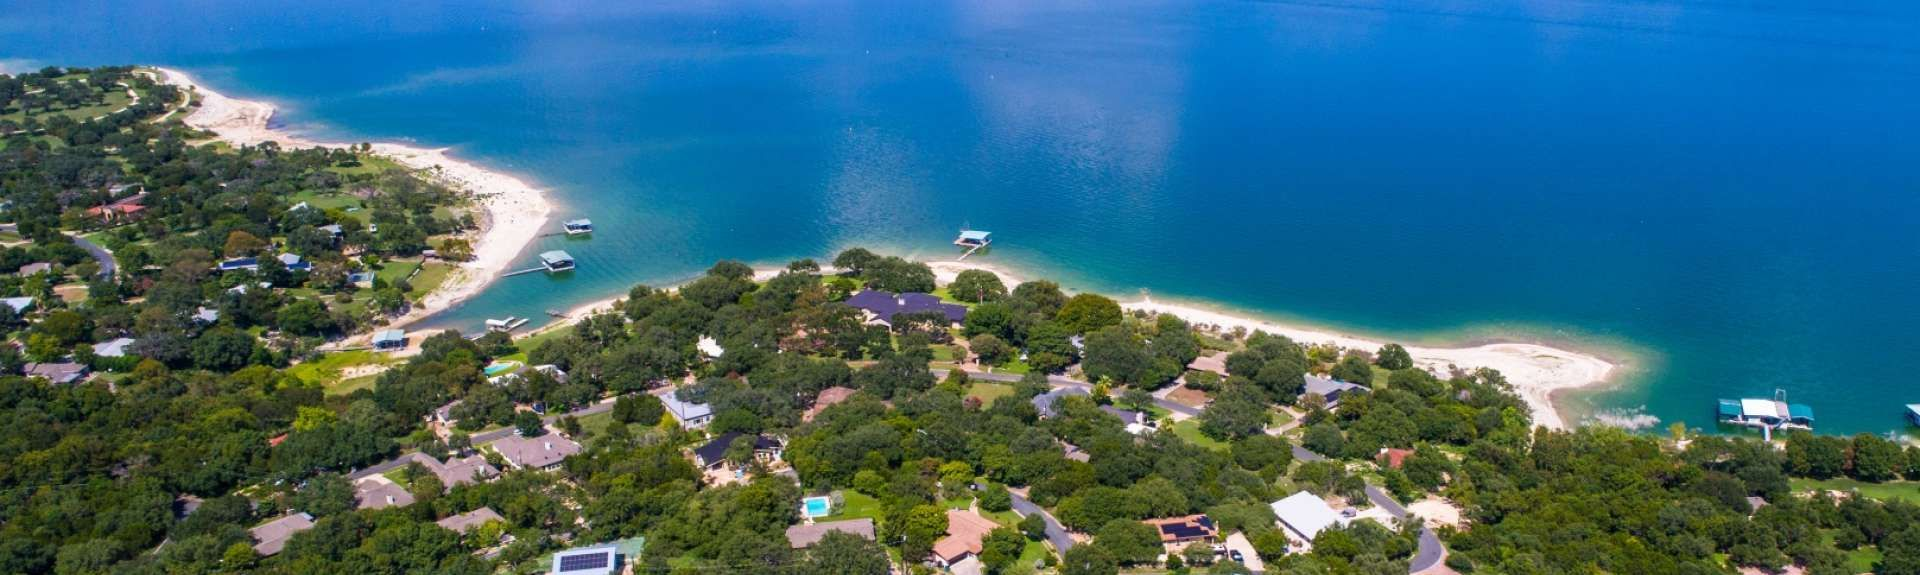 Highland Lake Estates, Lago Vista, Texas, United States of America